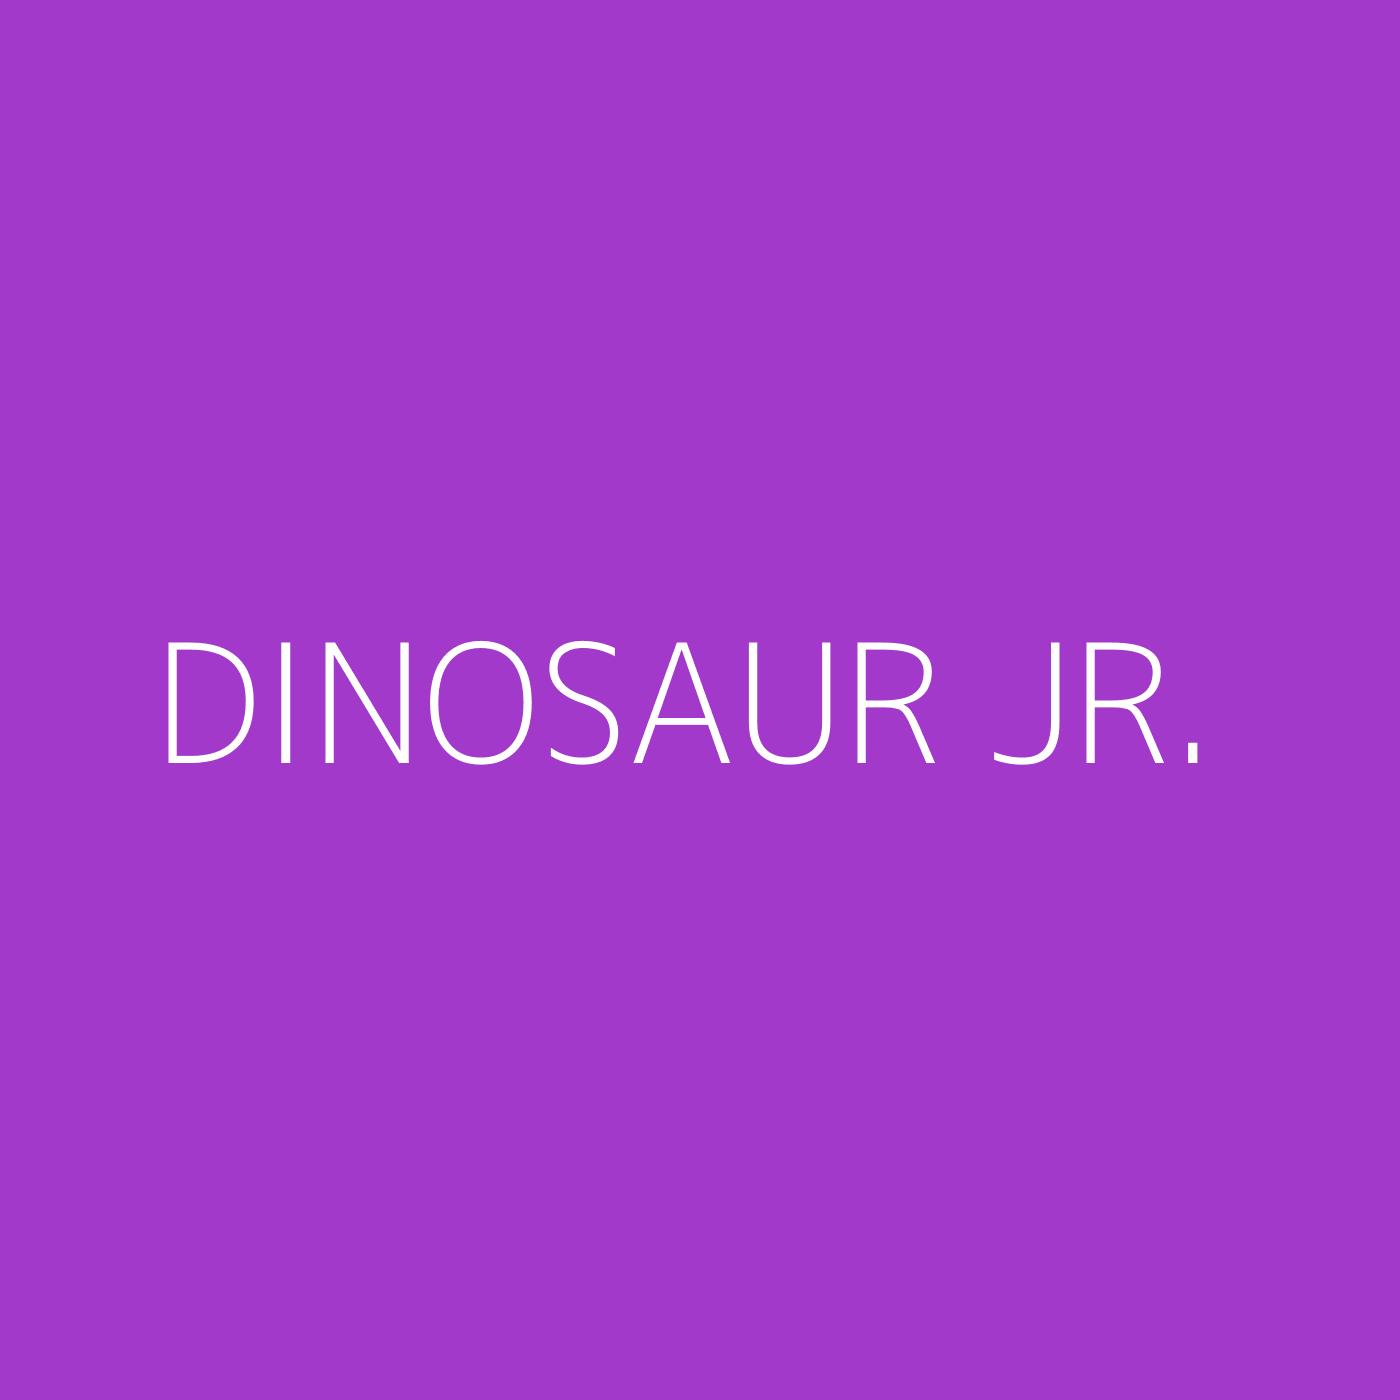 Dinosaur Jr. Playlist Artwork